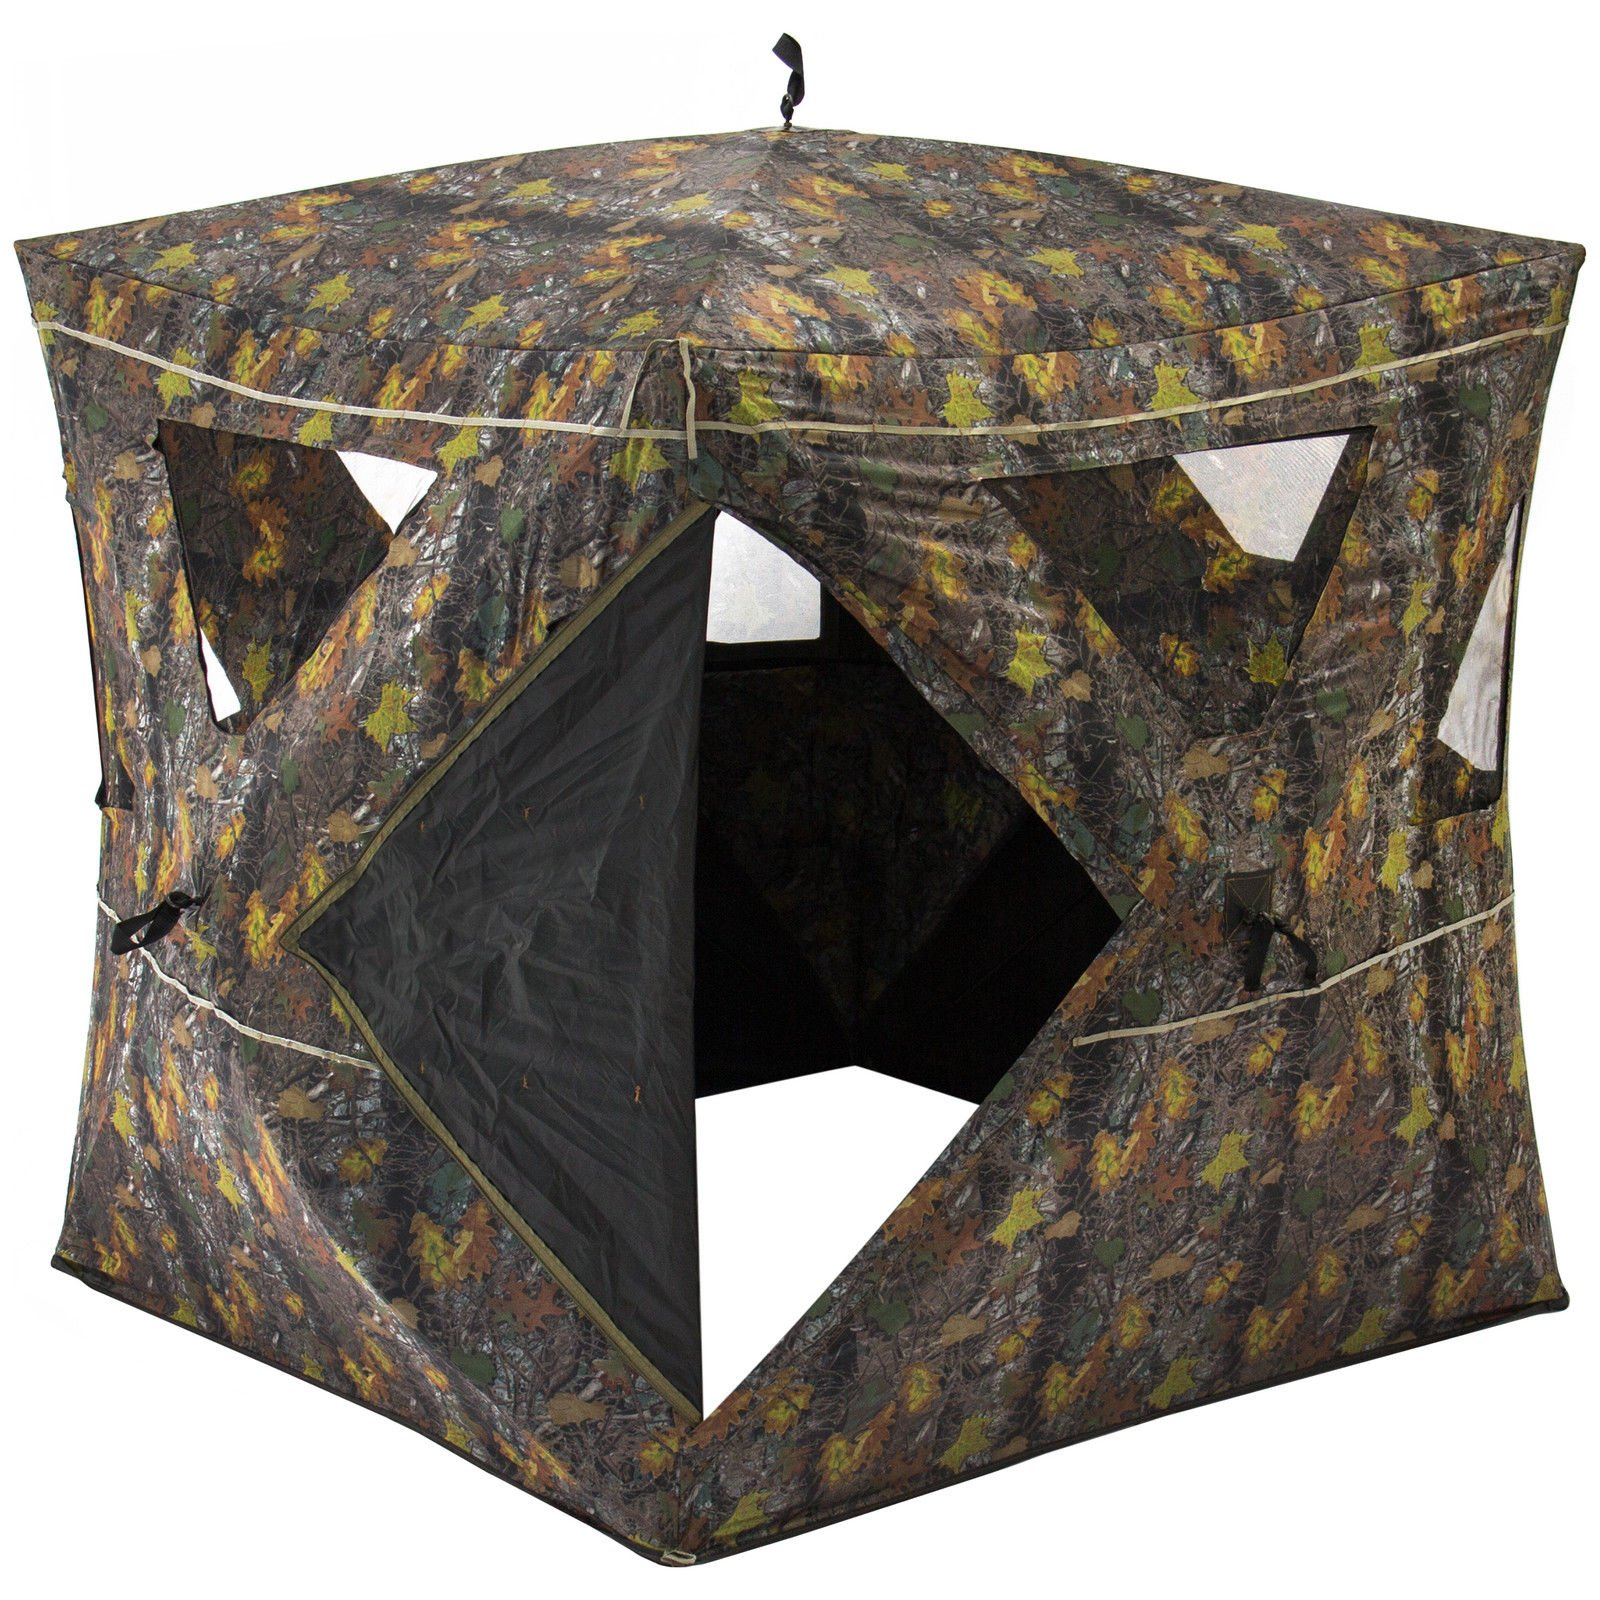 2-Person Portable Weather-Resistant Hunting Hub Blind W/ 360 Degree Viewing + FREE E - Book by Eight24hours